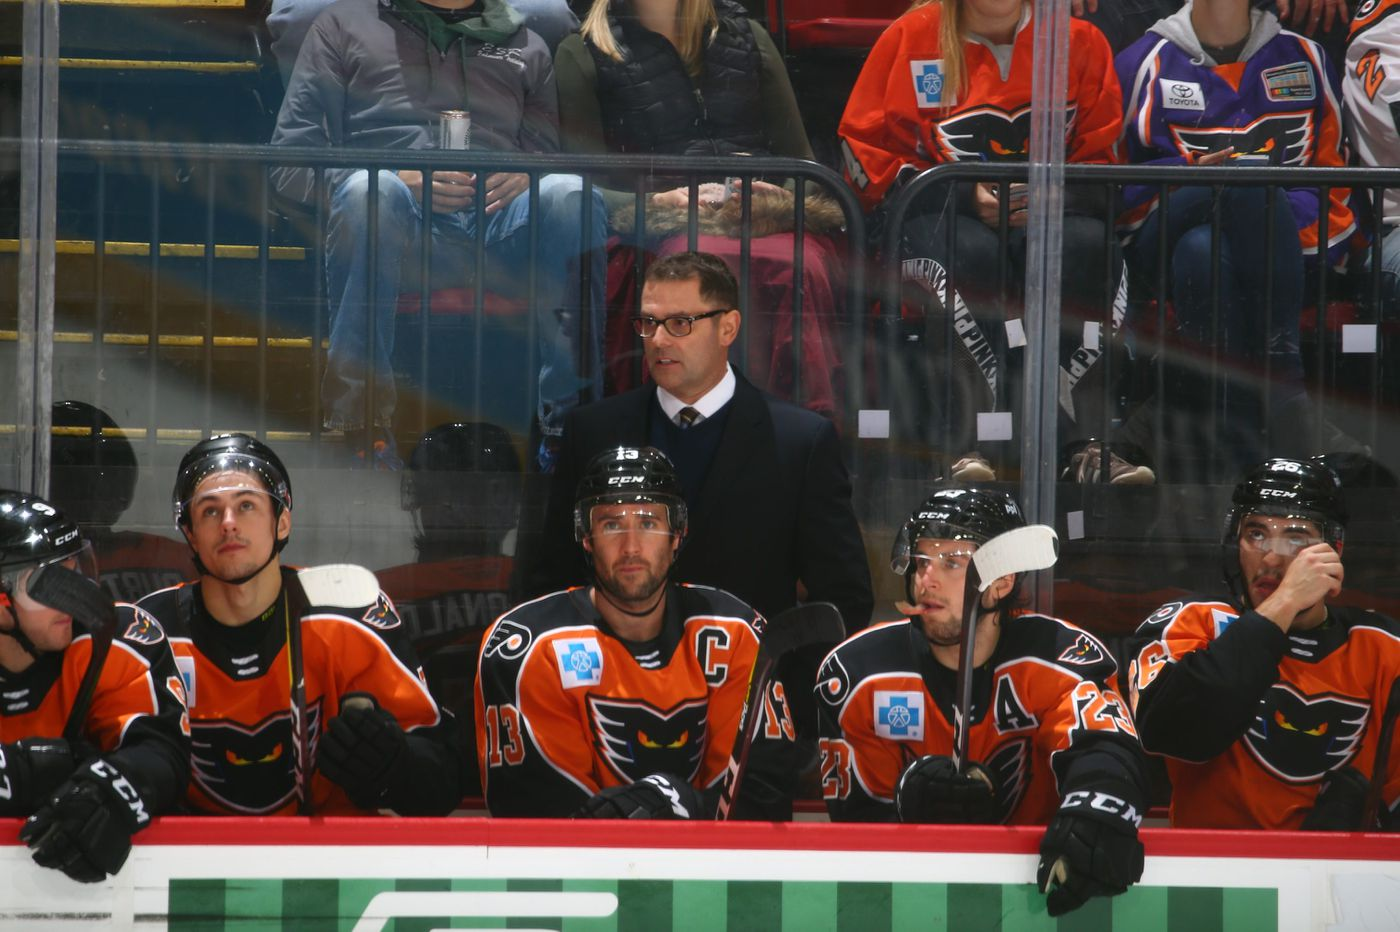 AHL: Phantoms Coach Scott Gordon Yearns To Return To The NHL, But Enjoys Life In The Minors